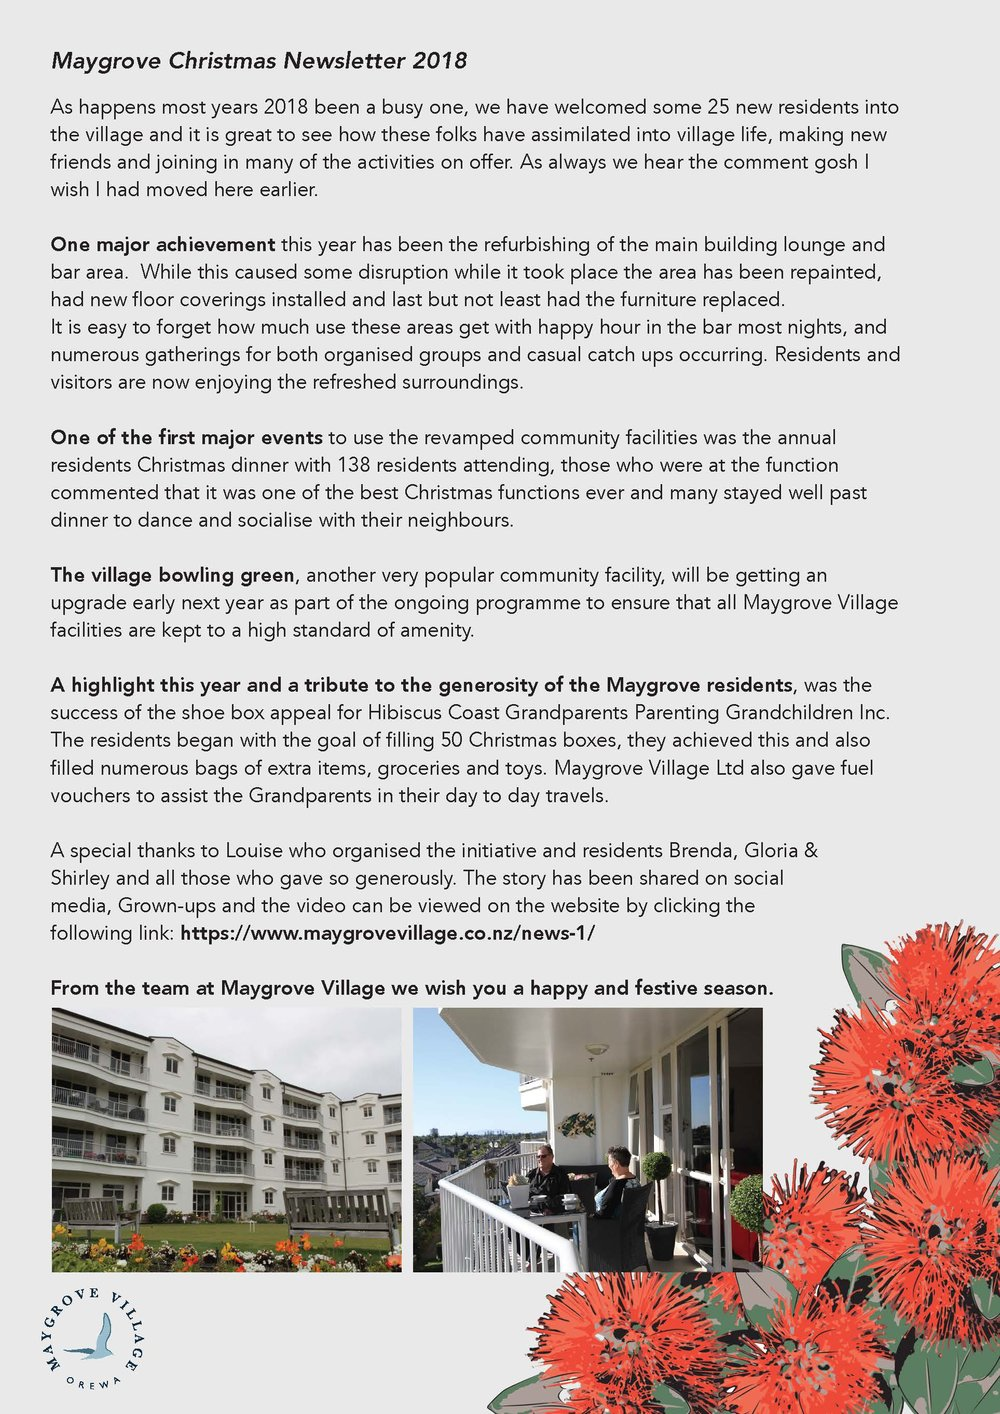 MGV December 2018 Newsletter.jpg